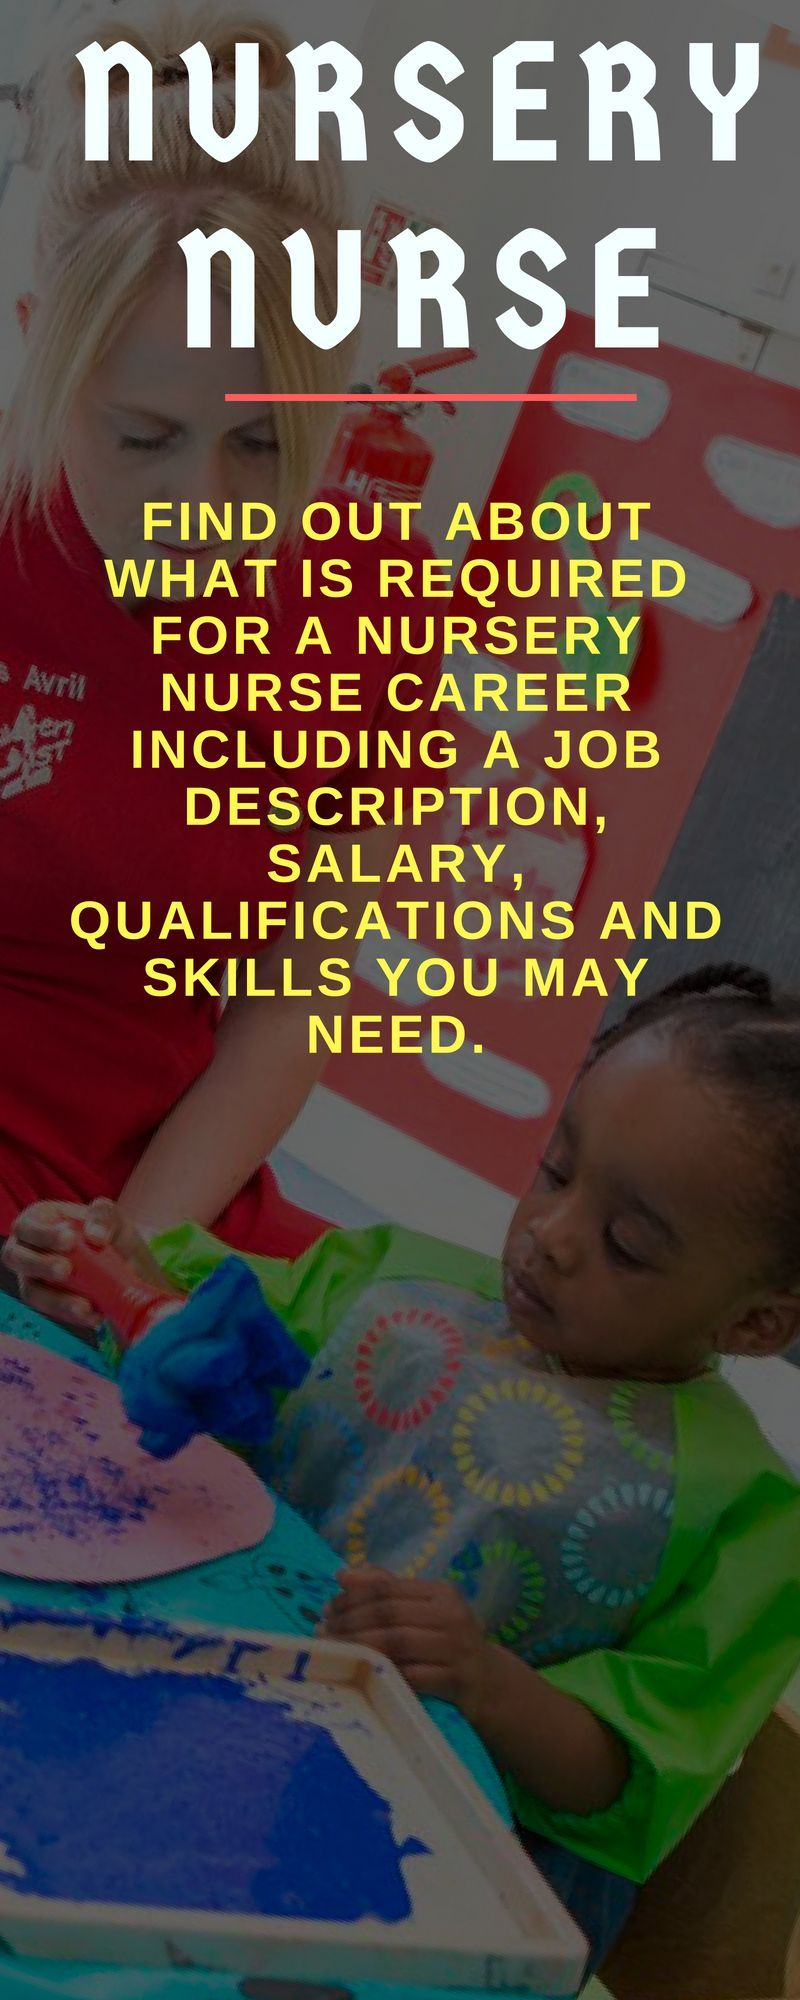 Find out about what is required for a nursery nurse career